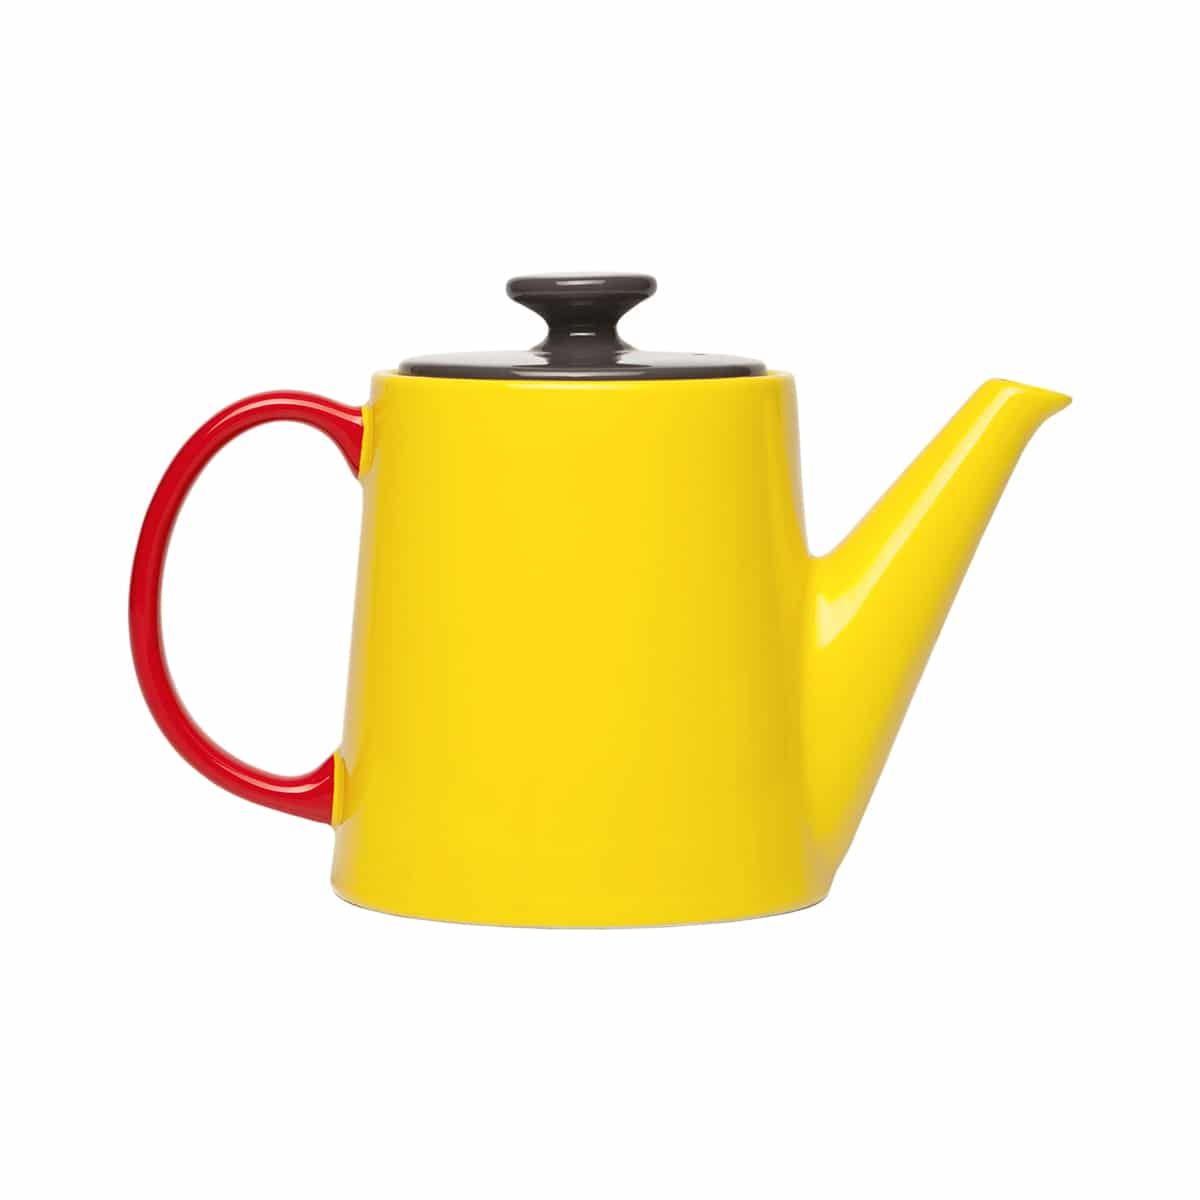 Theiere My Tea pot jaune jansen+co zeeloft